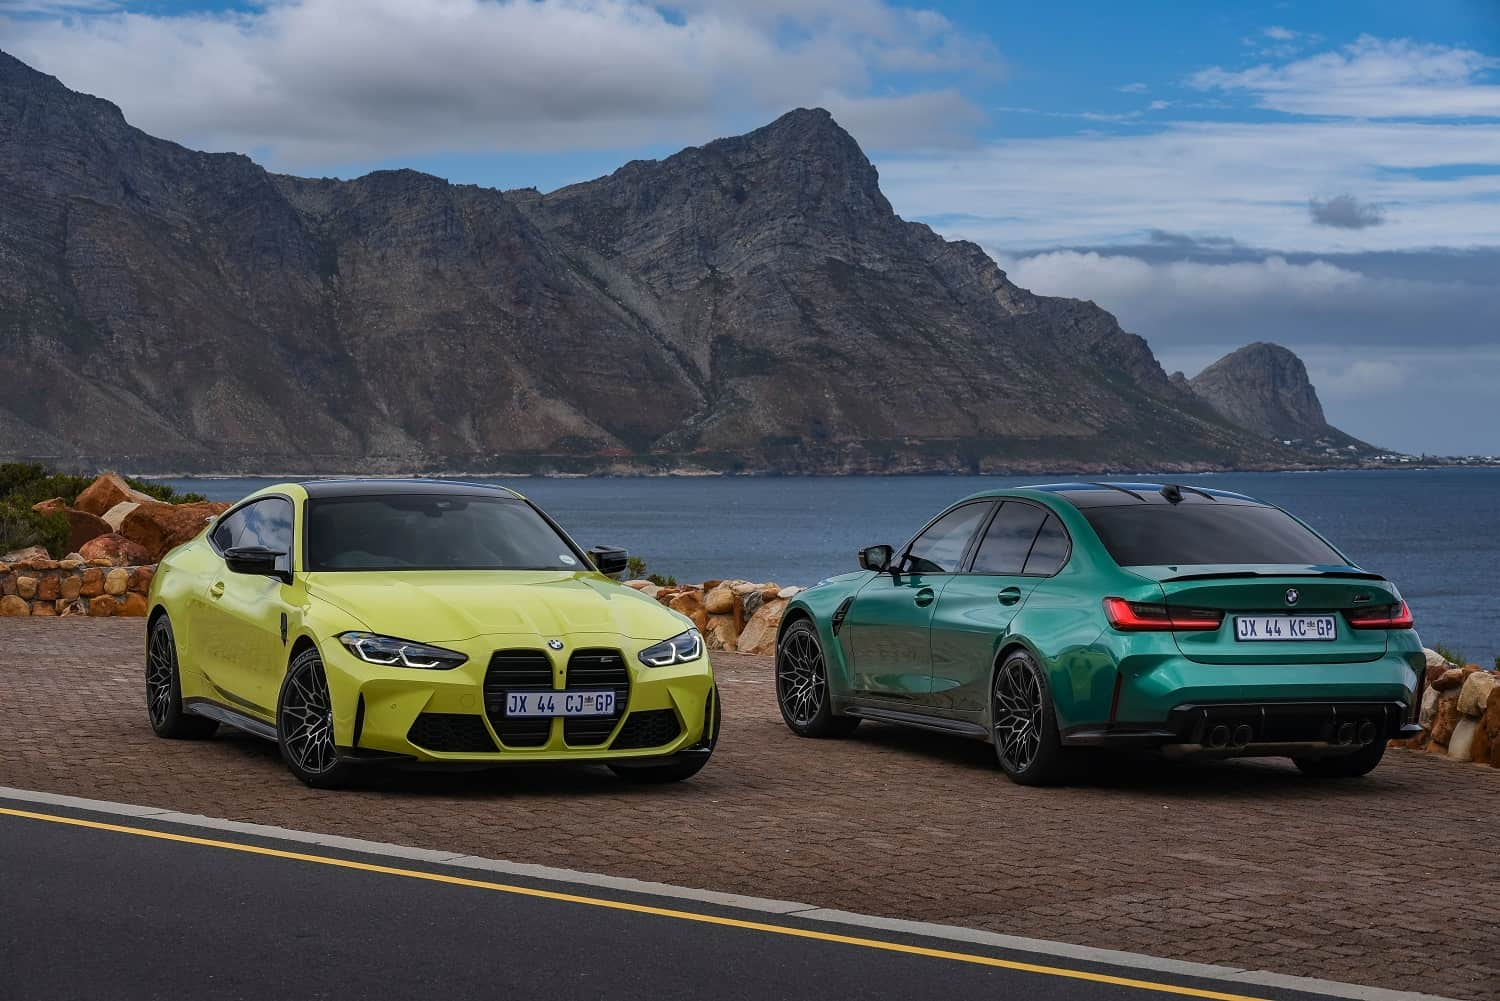 Keen BMW buyers end up with a Toyota